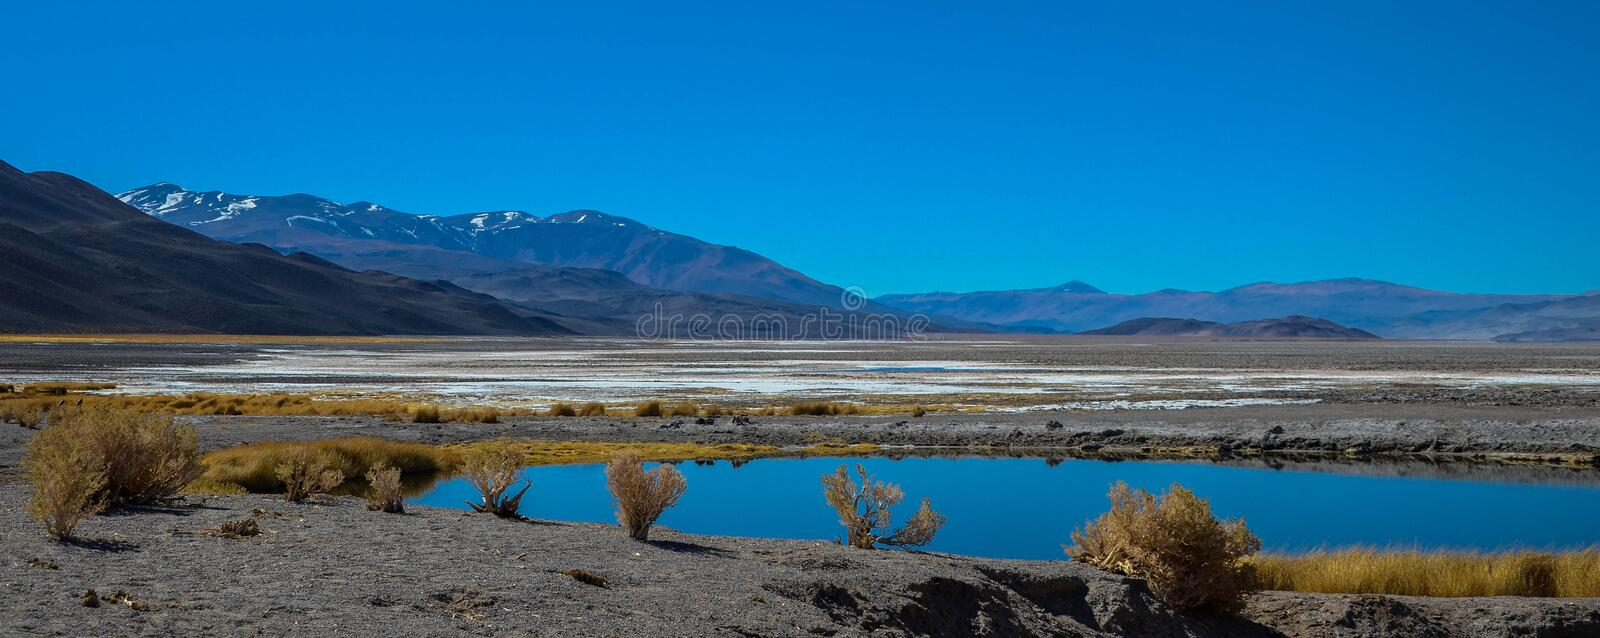 Colorful lagoon, salt peats, and the Andes mountains of Catamarca, Argentina stock photo